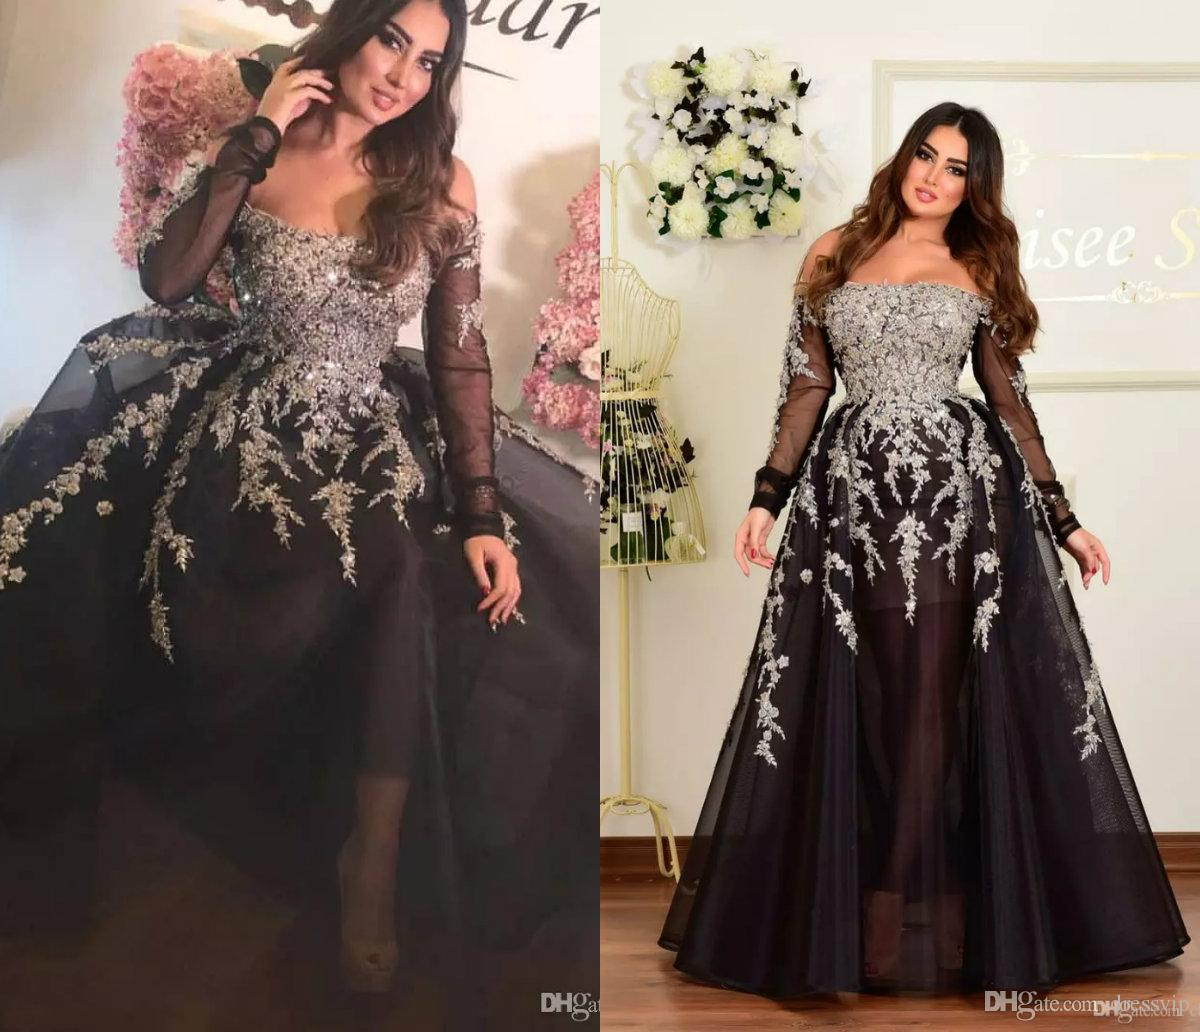 57b9209151382 2018 Off The Shoulder A Line Long Evening Dresses Tulle Appliques Beaded  Custom Made Formal Evening Gowns Long Sleeve Prom Party Dresses Unique  Evening ...